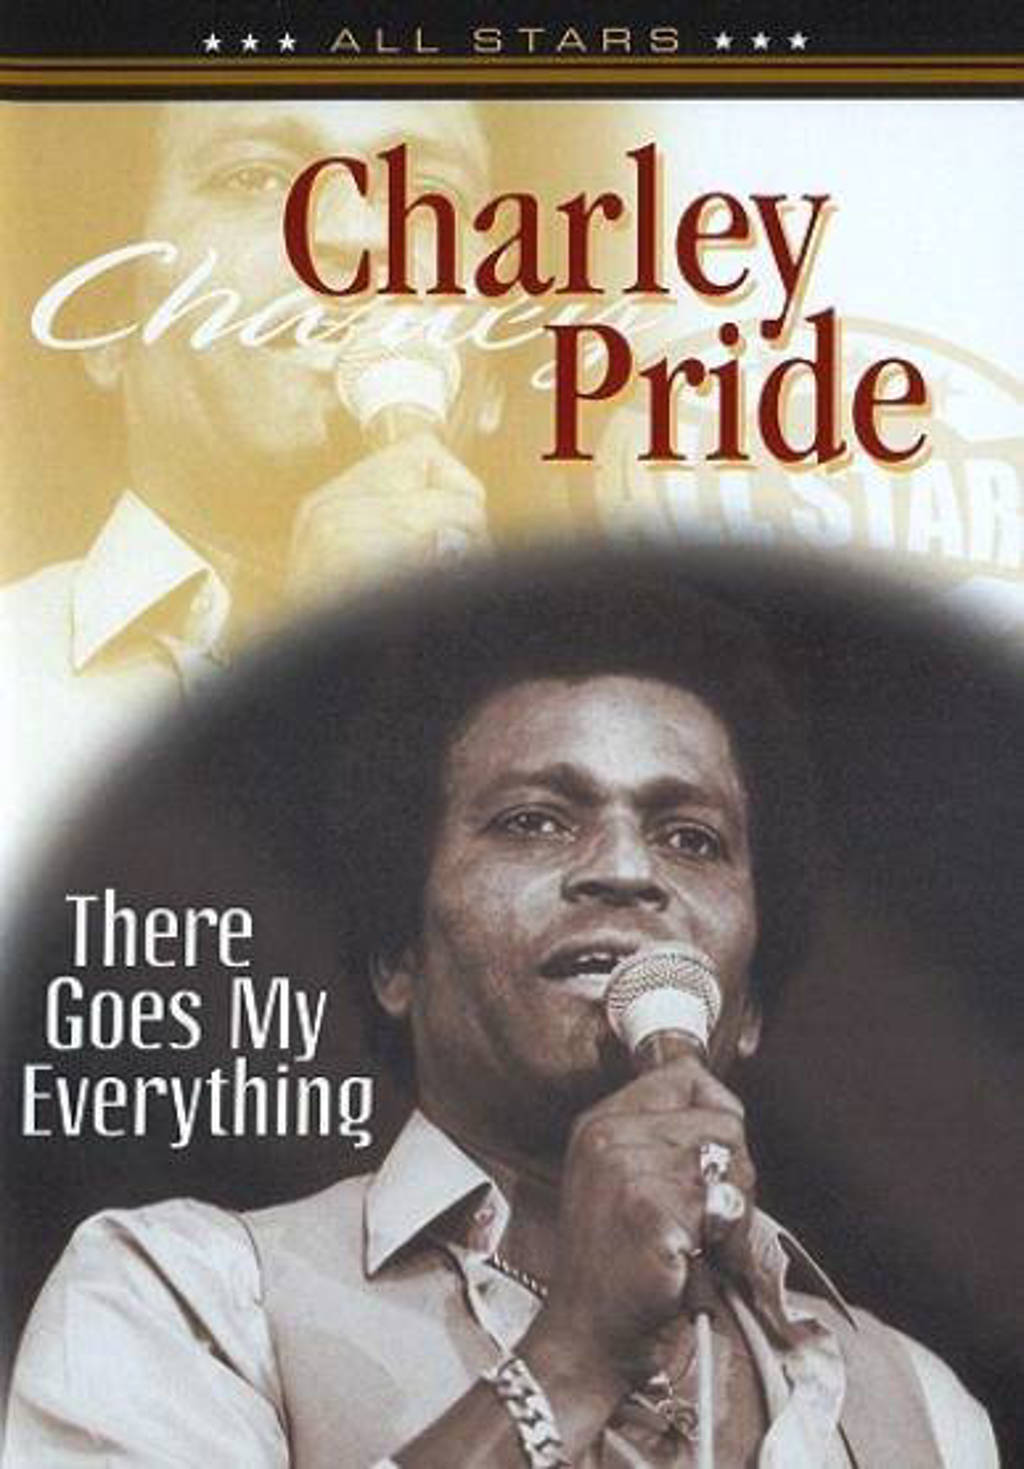 Charley pride - there goes my everything (DVD)